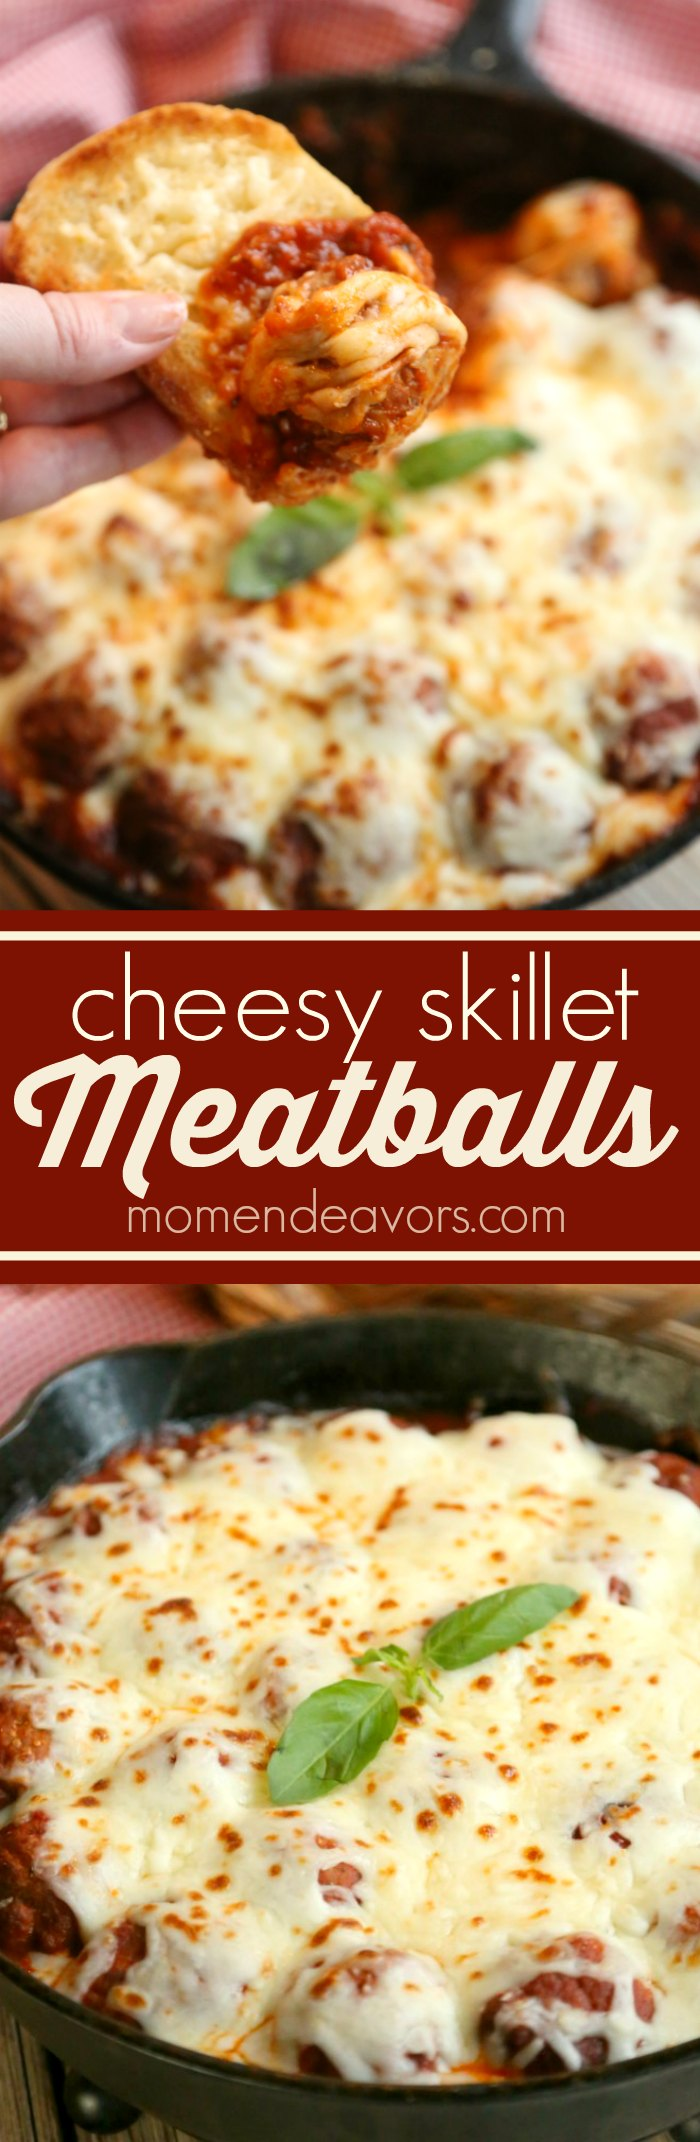 Cheesy Skillet Meatballs Recipe